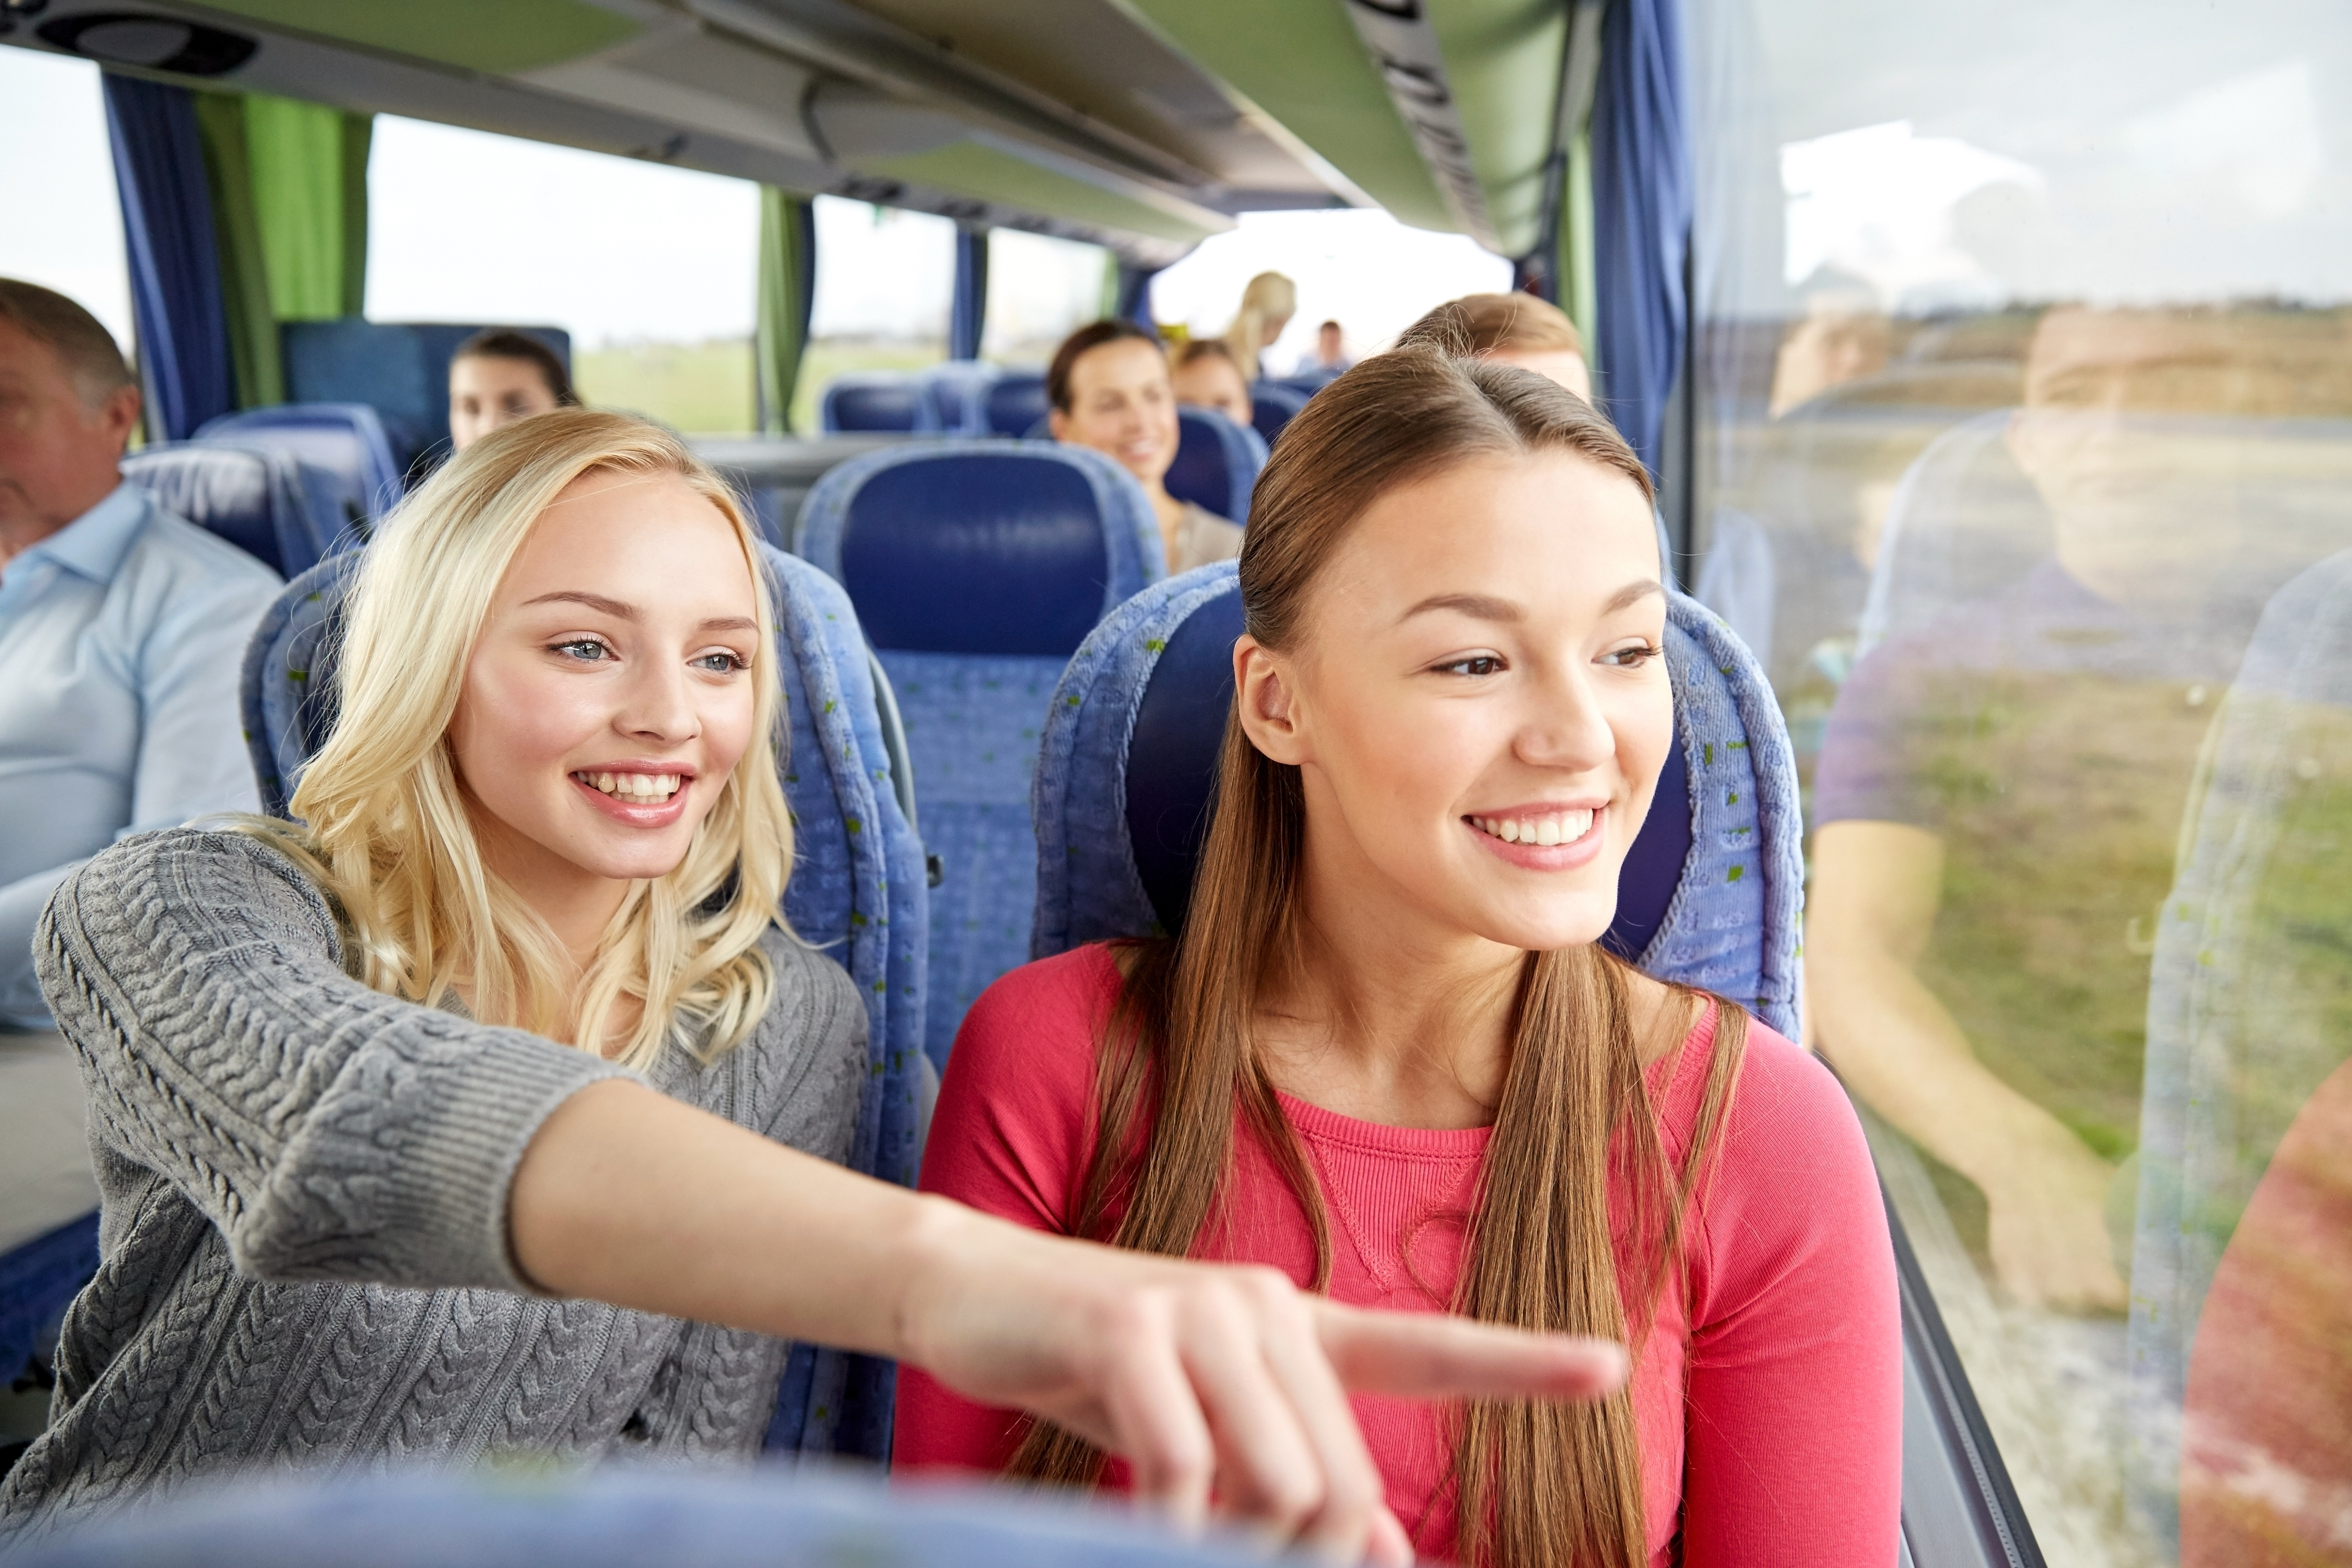 Women traveling together on road trip